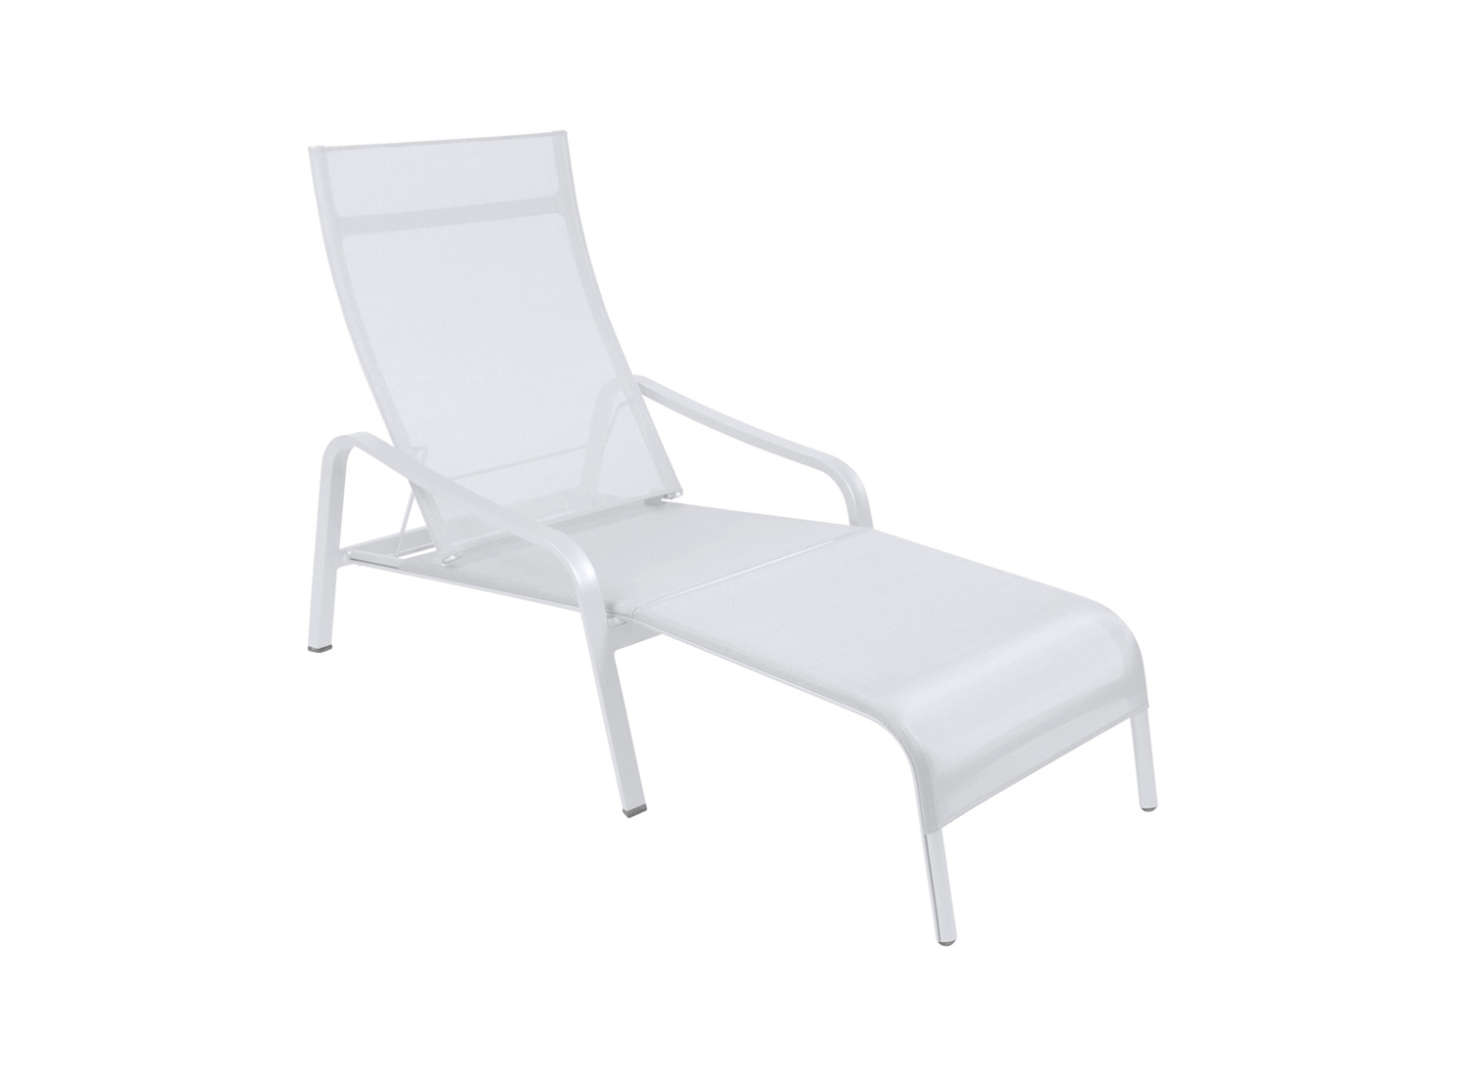 another design from fermob is the aliz deck chair which is made of aluminum and - Chaise Design Metal